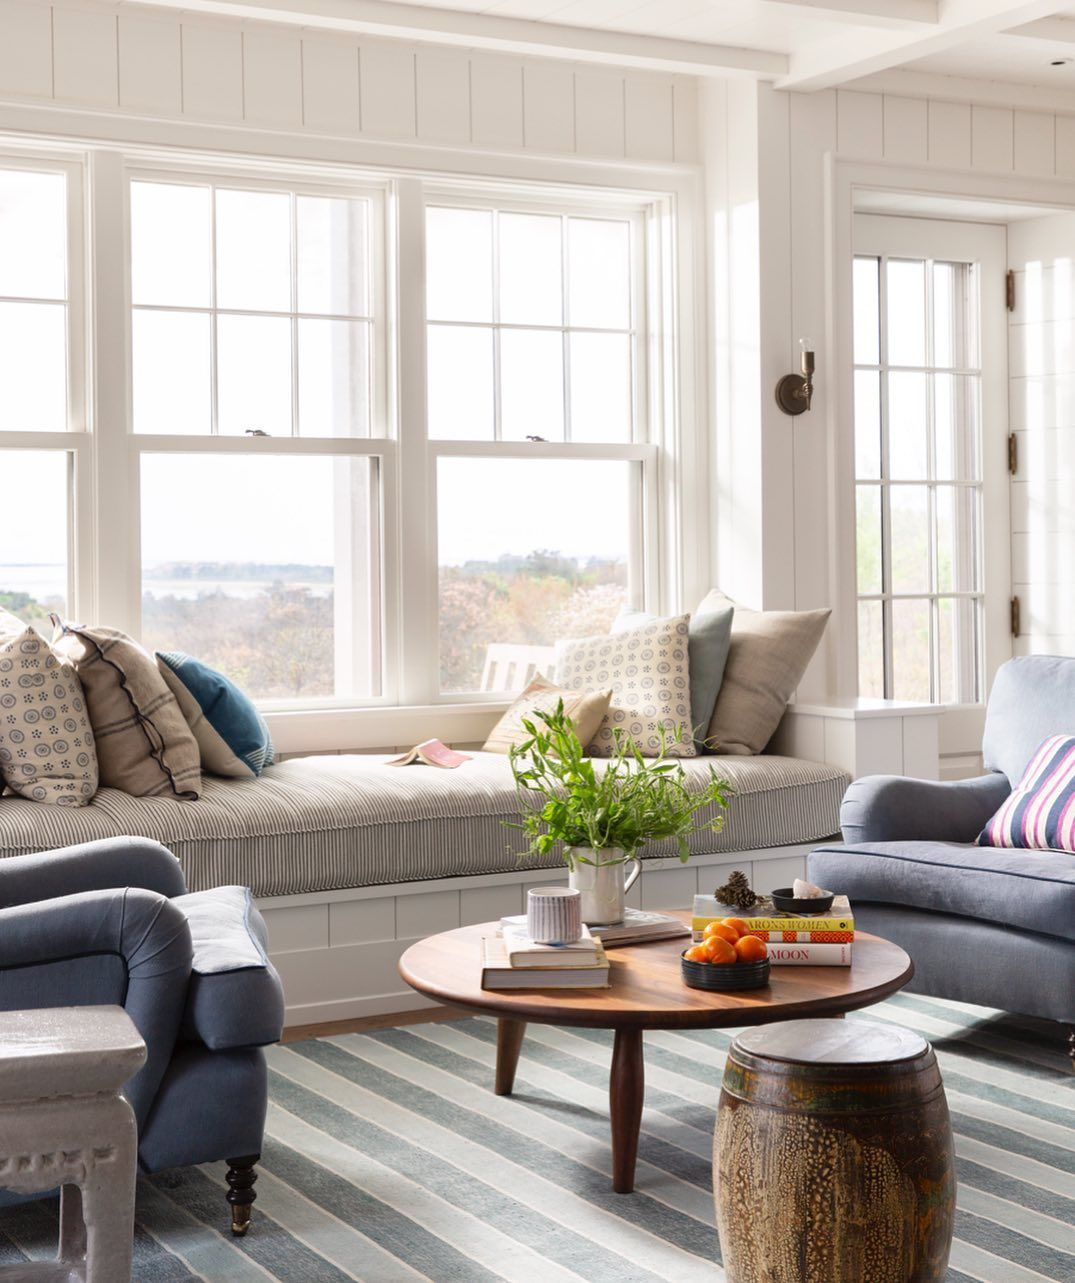 Katie Martinez Design On Instagram You Can Never Have Too Many Stripes Right Comfy Seating Opposite The Kitchen And Dining Tabl Blue Dining Room Chairs Beach Furniture Decor Decor